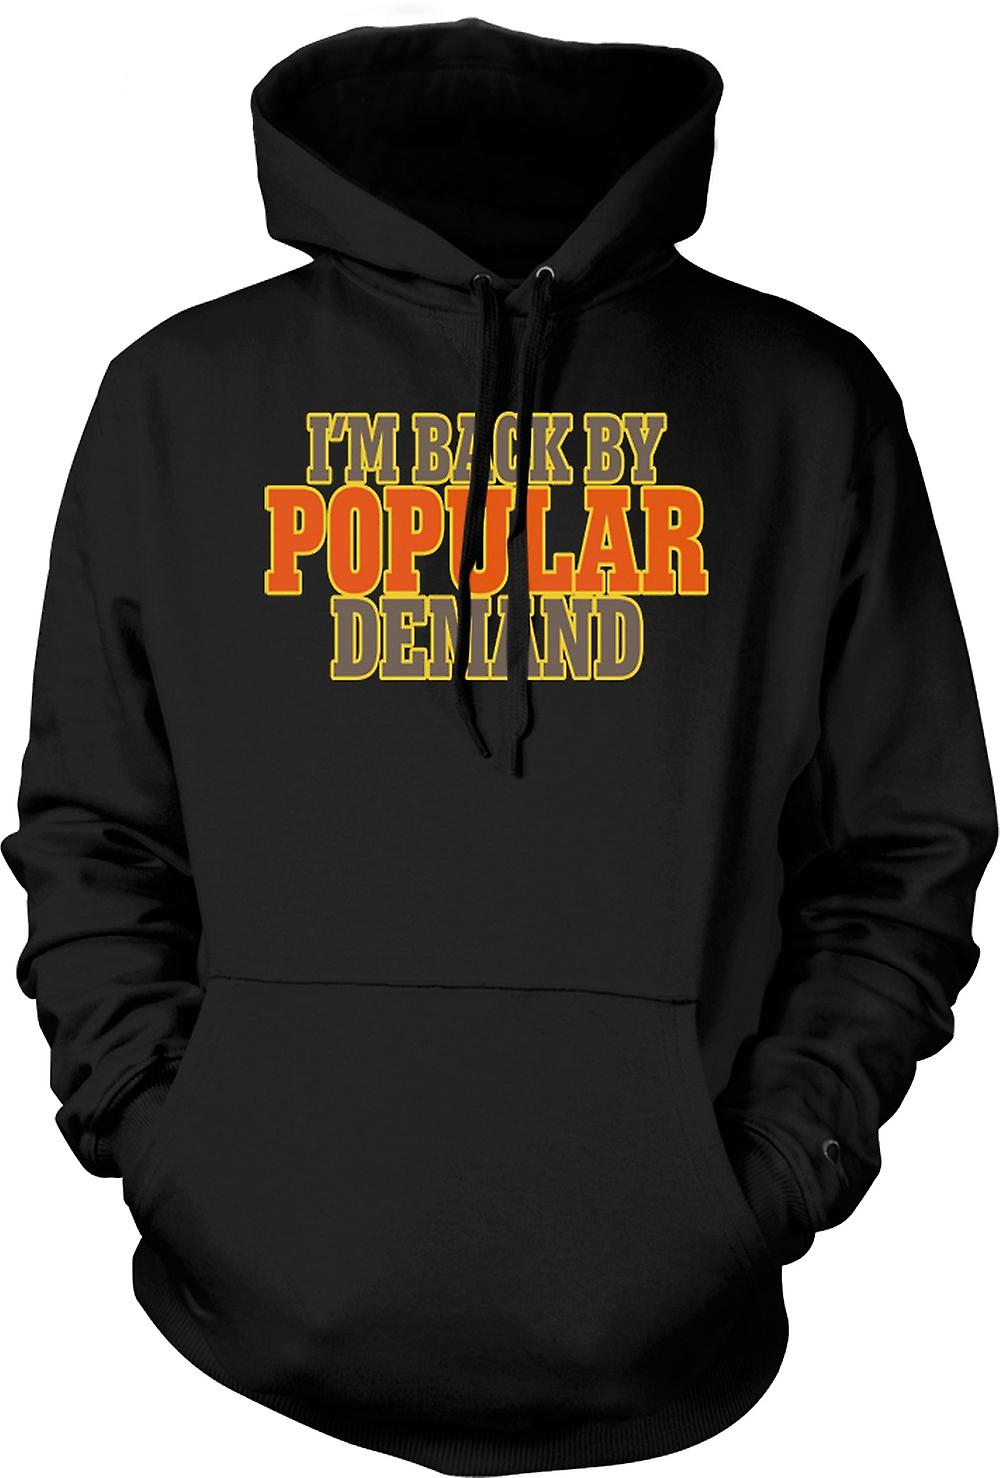 Mens Hoodie - I'm Back By Popular Demand - Quote